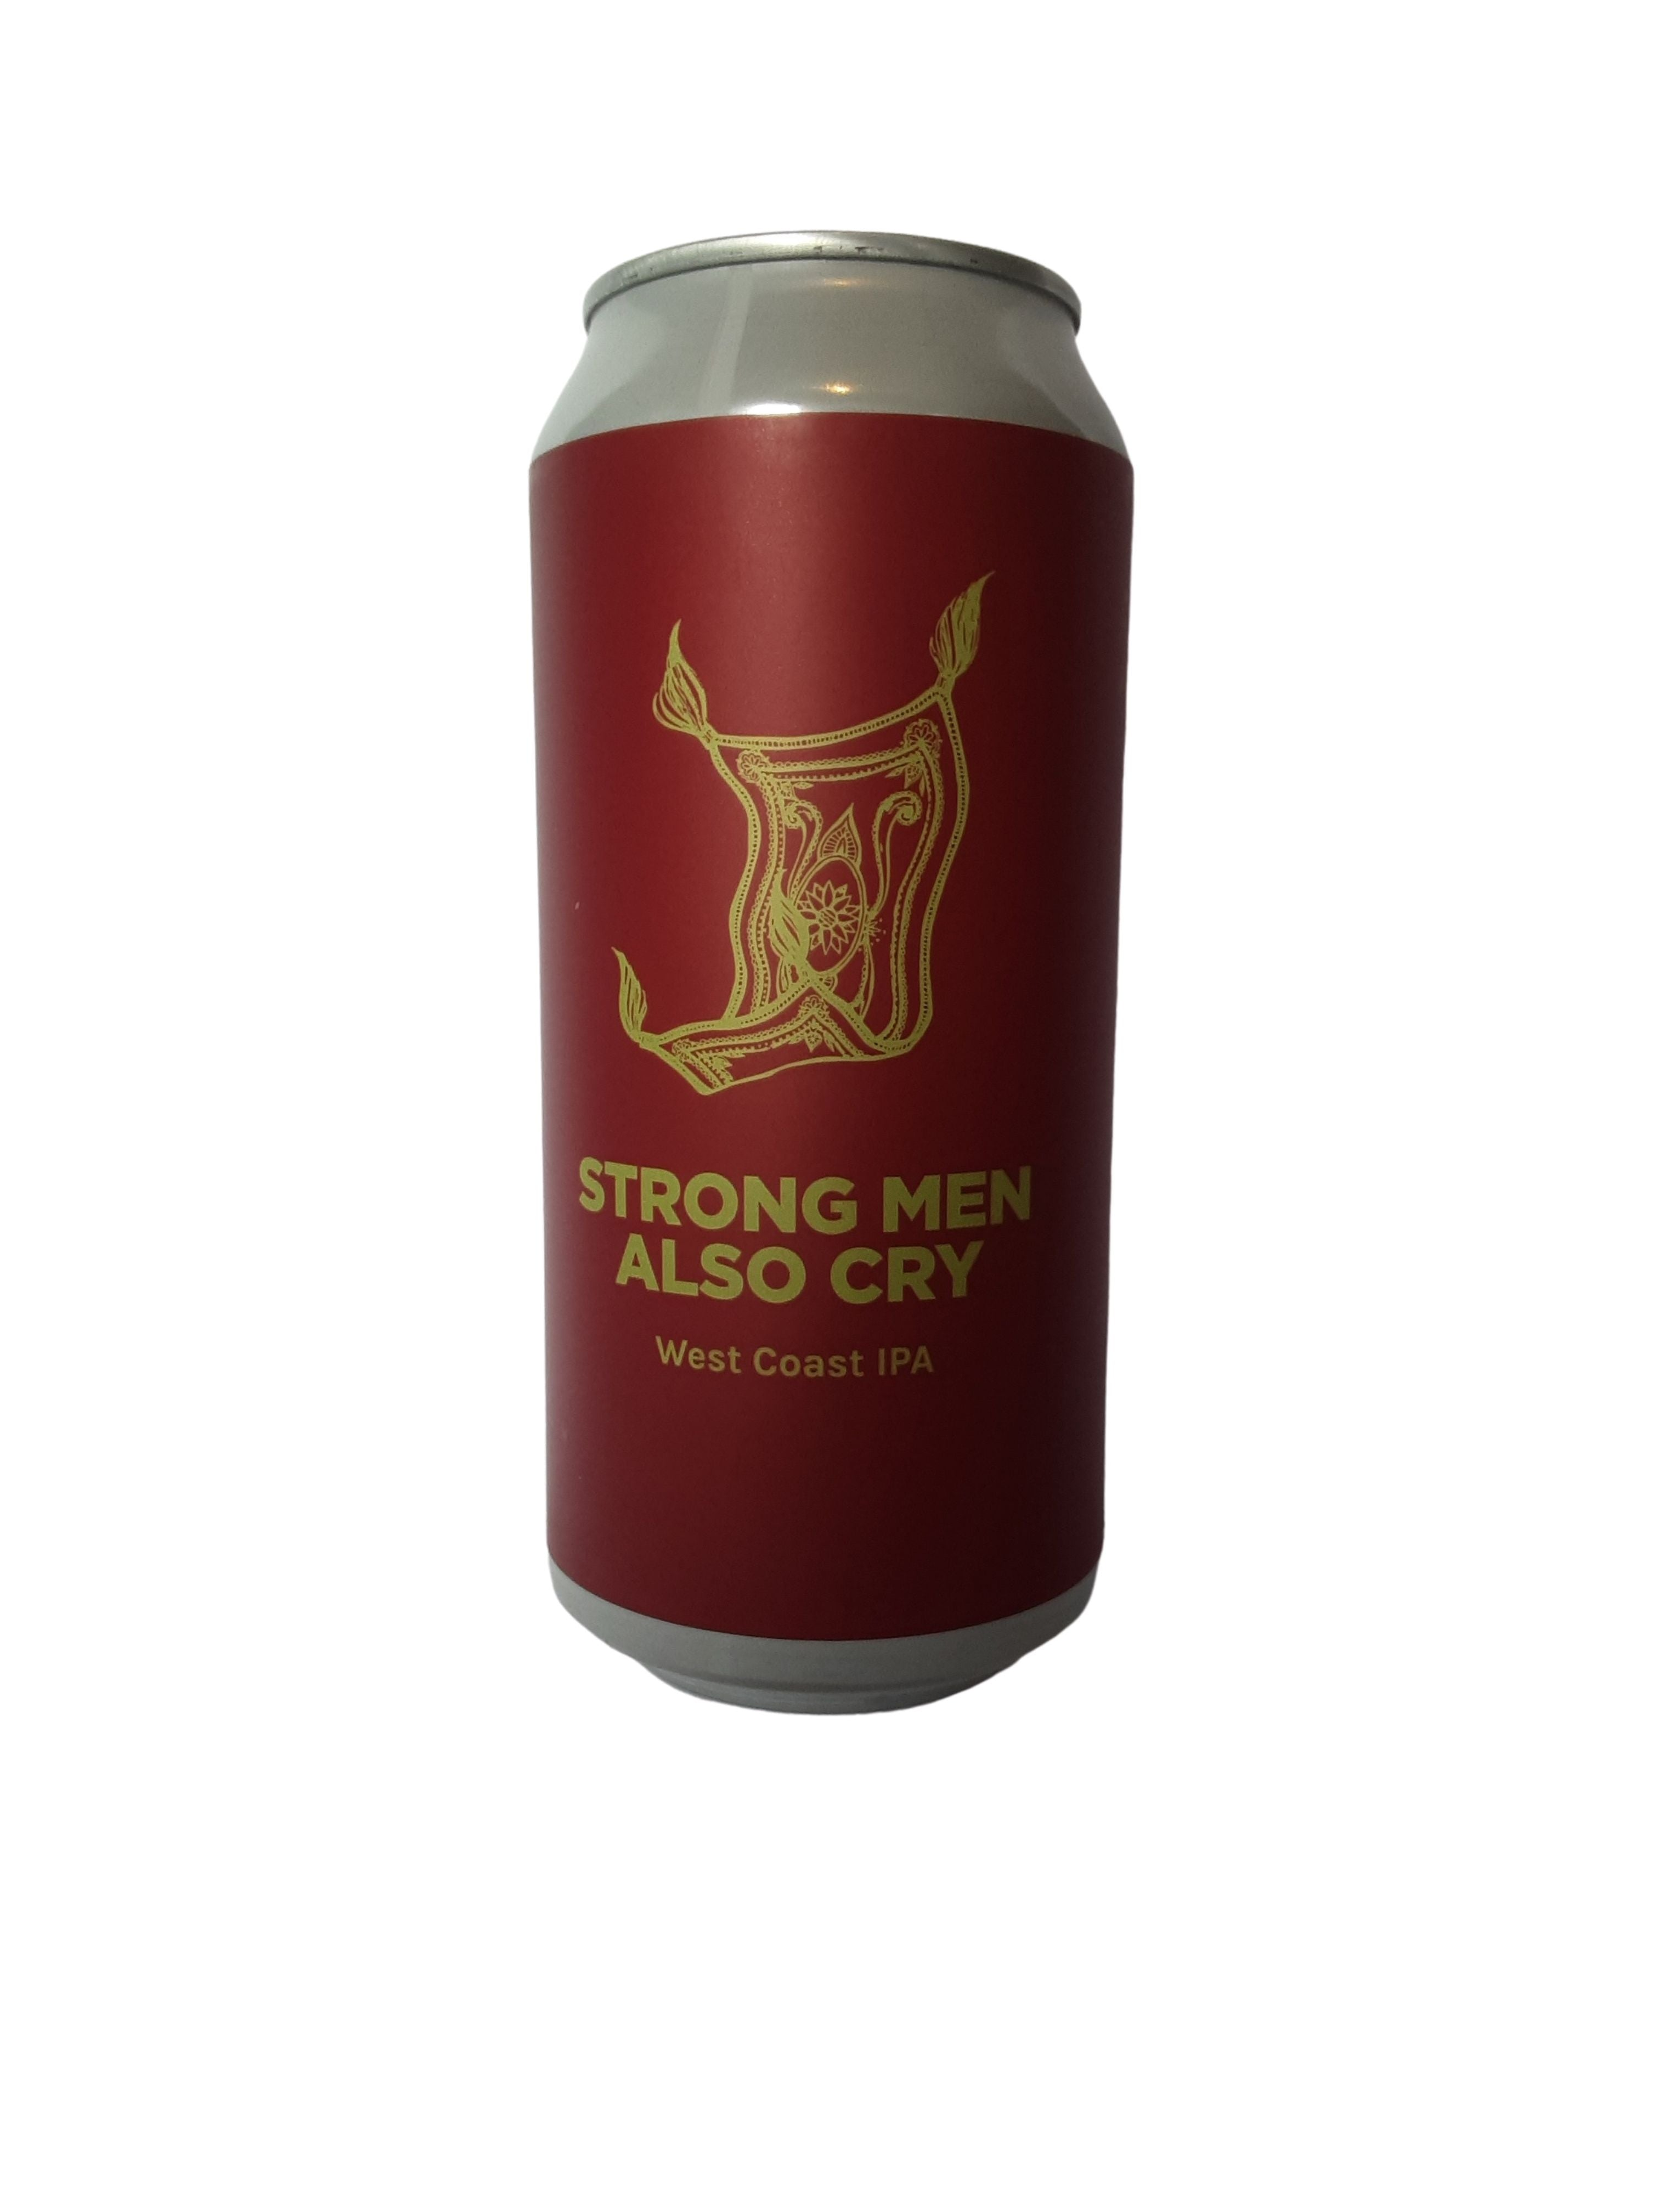 Pomona Island - Strong Men Also Cry - American IPA - 6.8% (3.77 UT)